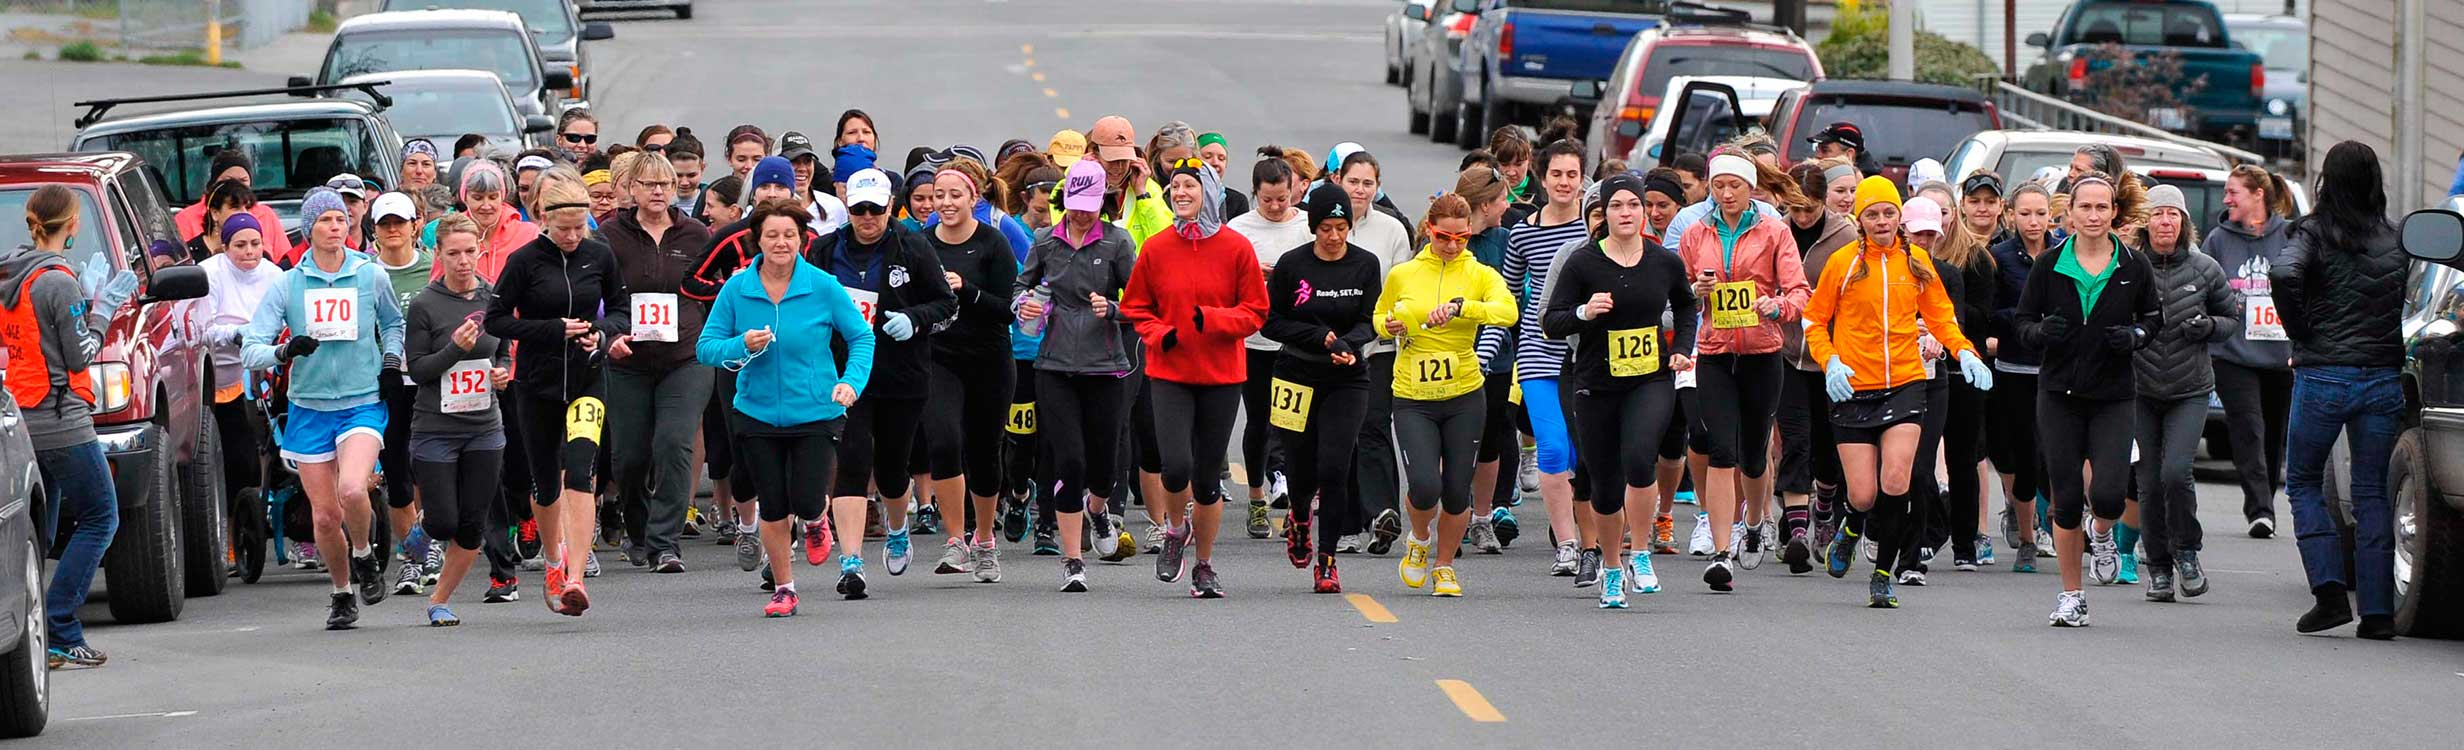 RLR 2013… and they're off! - John Miller photo